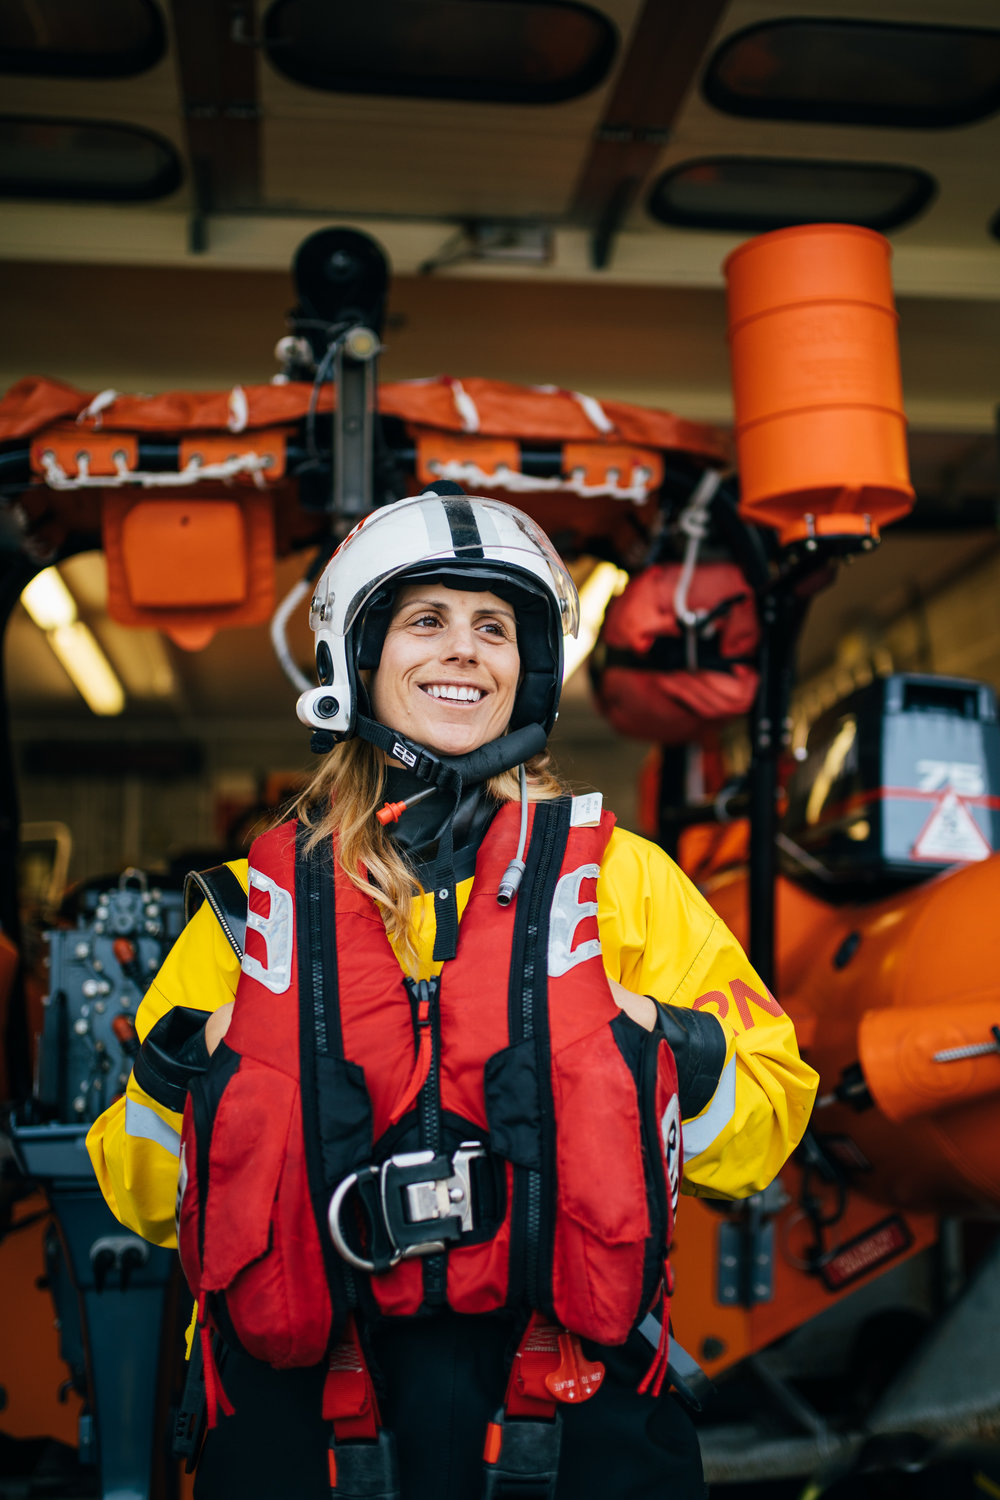 RNLI volunteer Wendy Rabett pictured at Falmouth RNLI Lifeboat Station. Falmouth, Cornwall, UK. 8th Feb 2019.